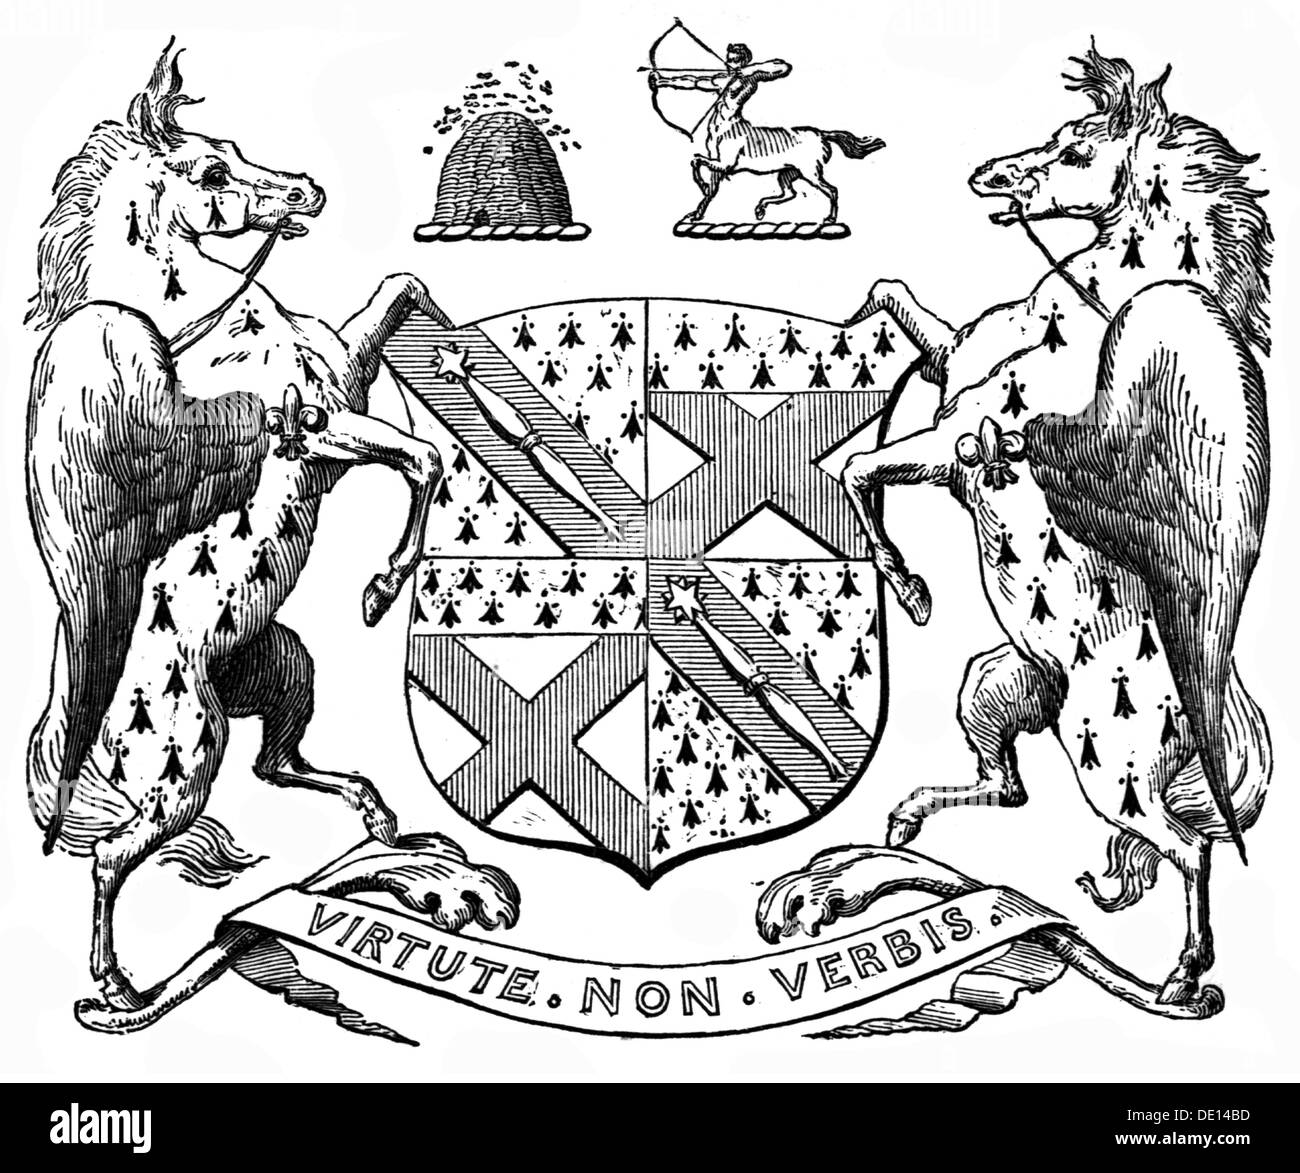 heraldry, coat of arms, Great Britain, coat of arms of the Marquess of Lansdowne, wood engraving, 19th century, Stock Photo